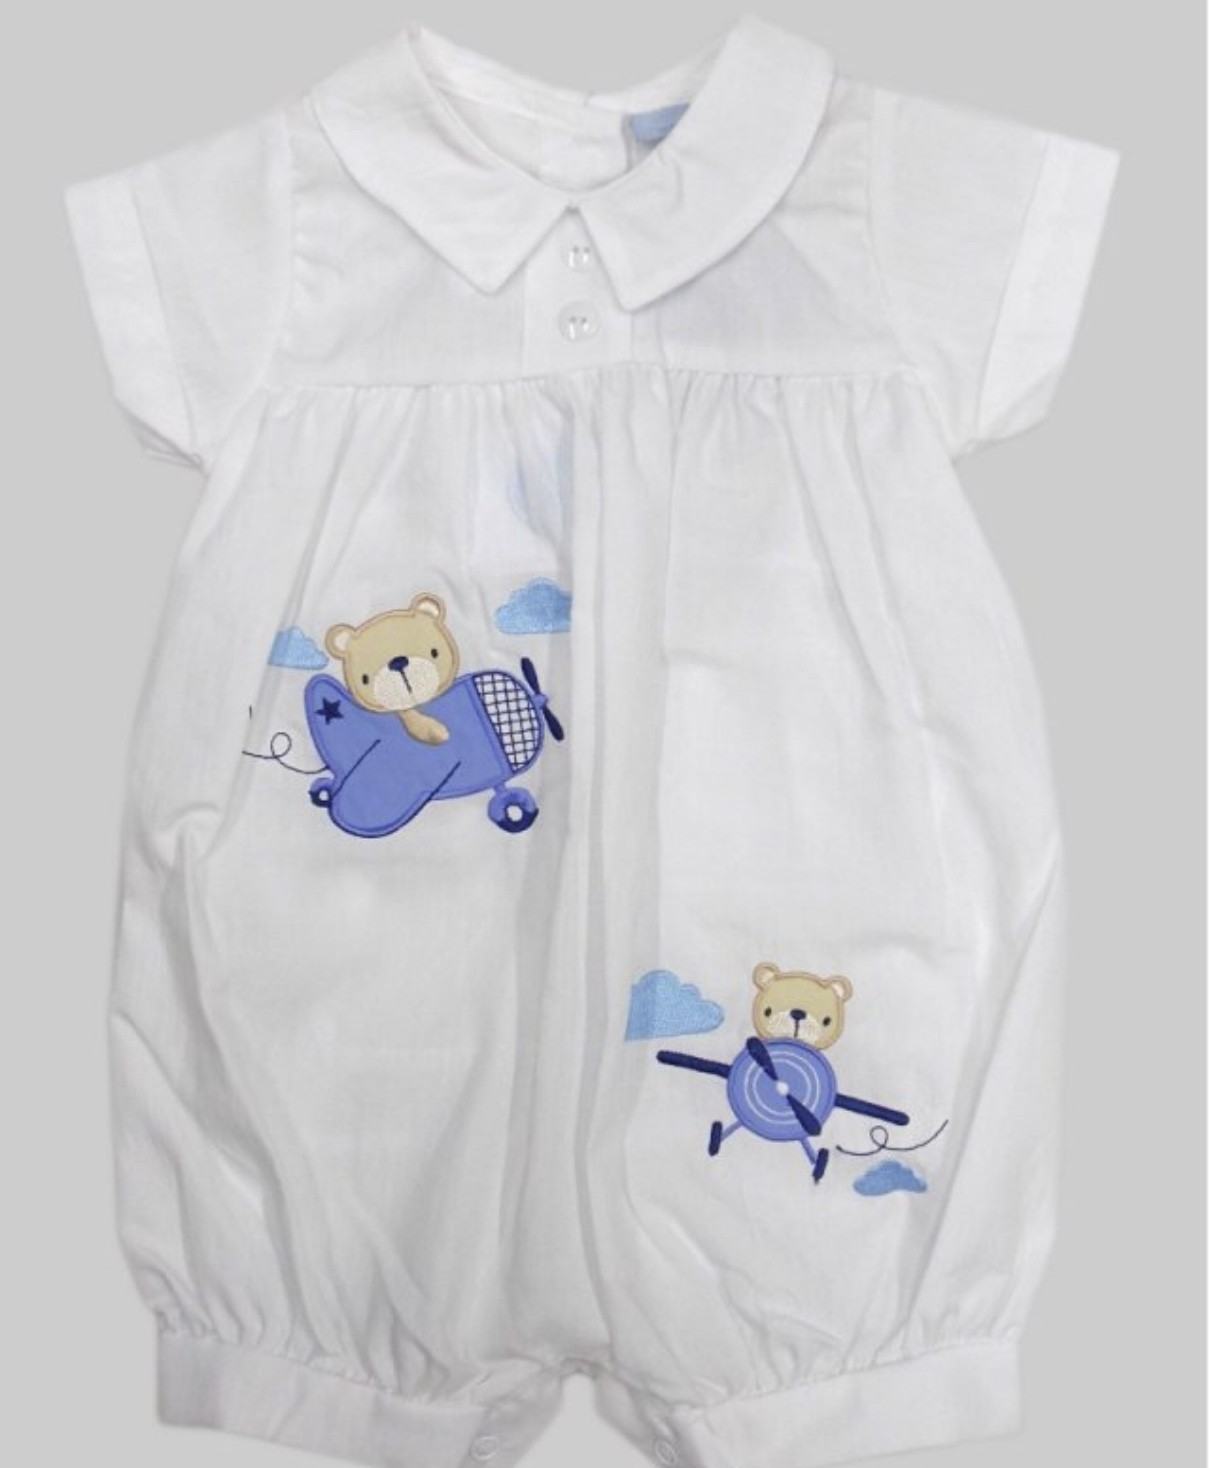 Rock a Bye Baby Baby Boys White and Blue Romper PACK OF 6